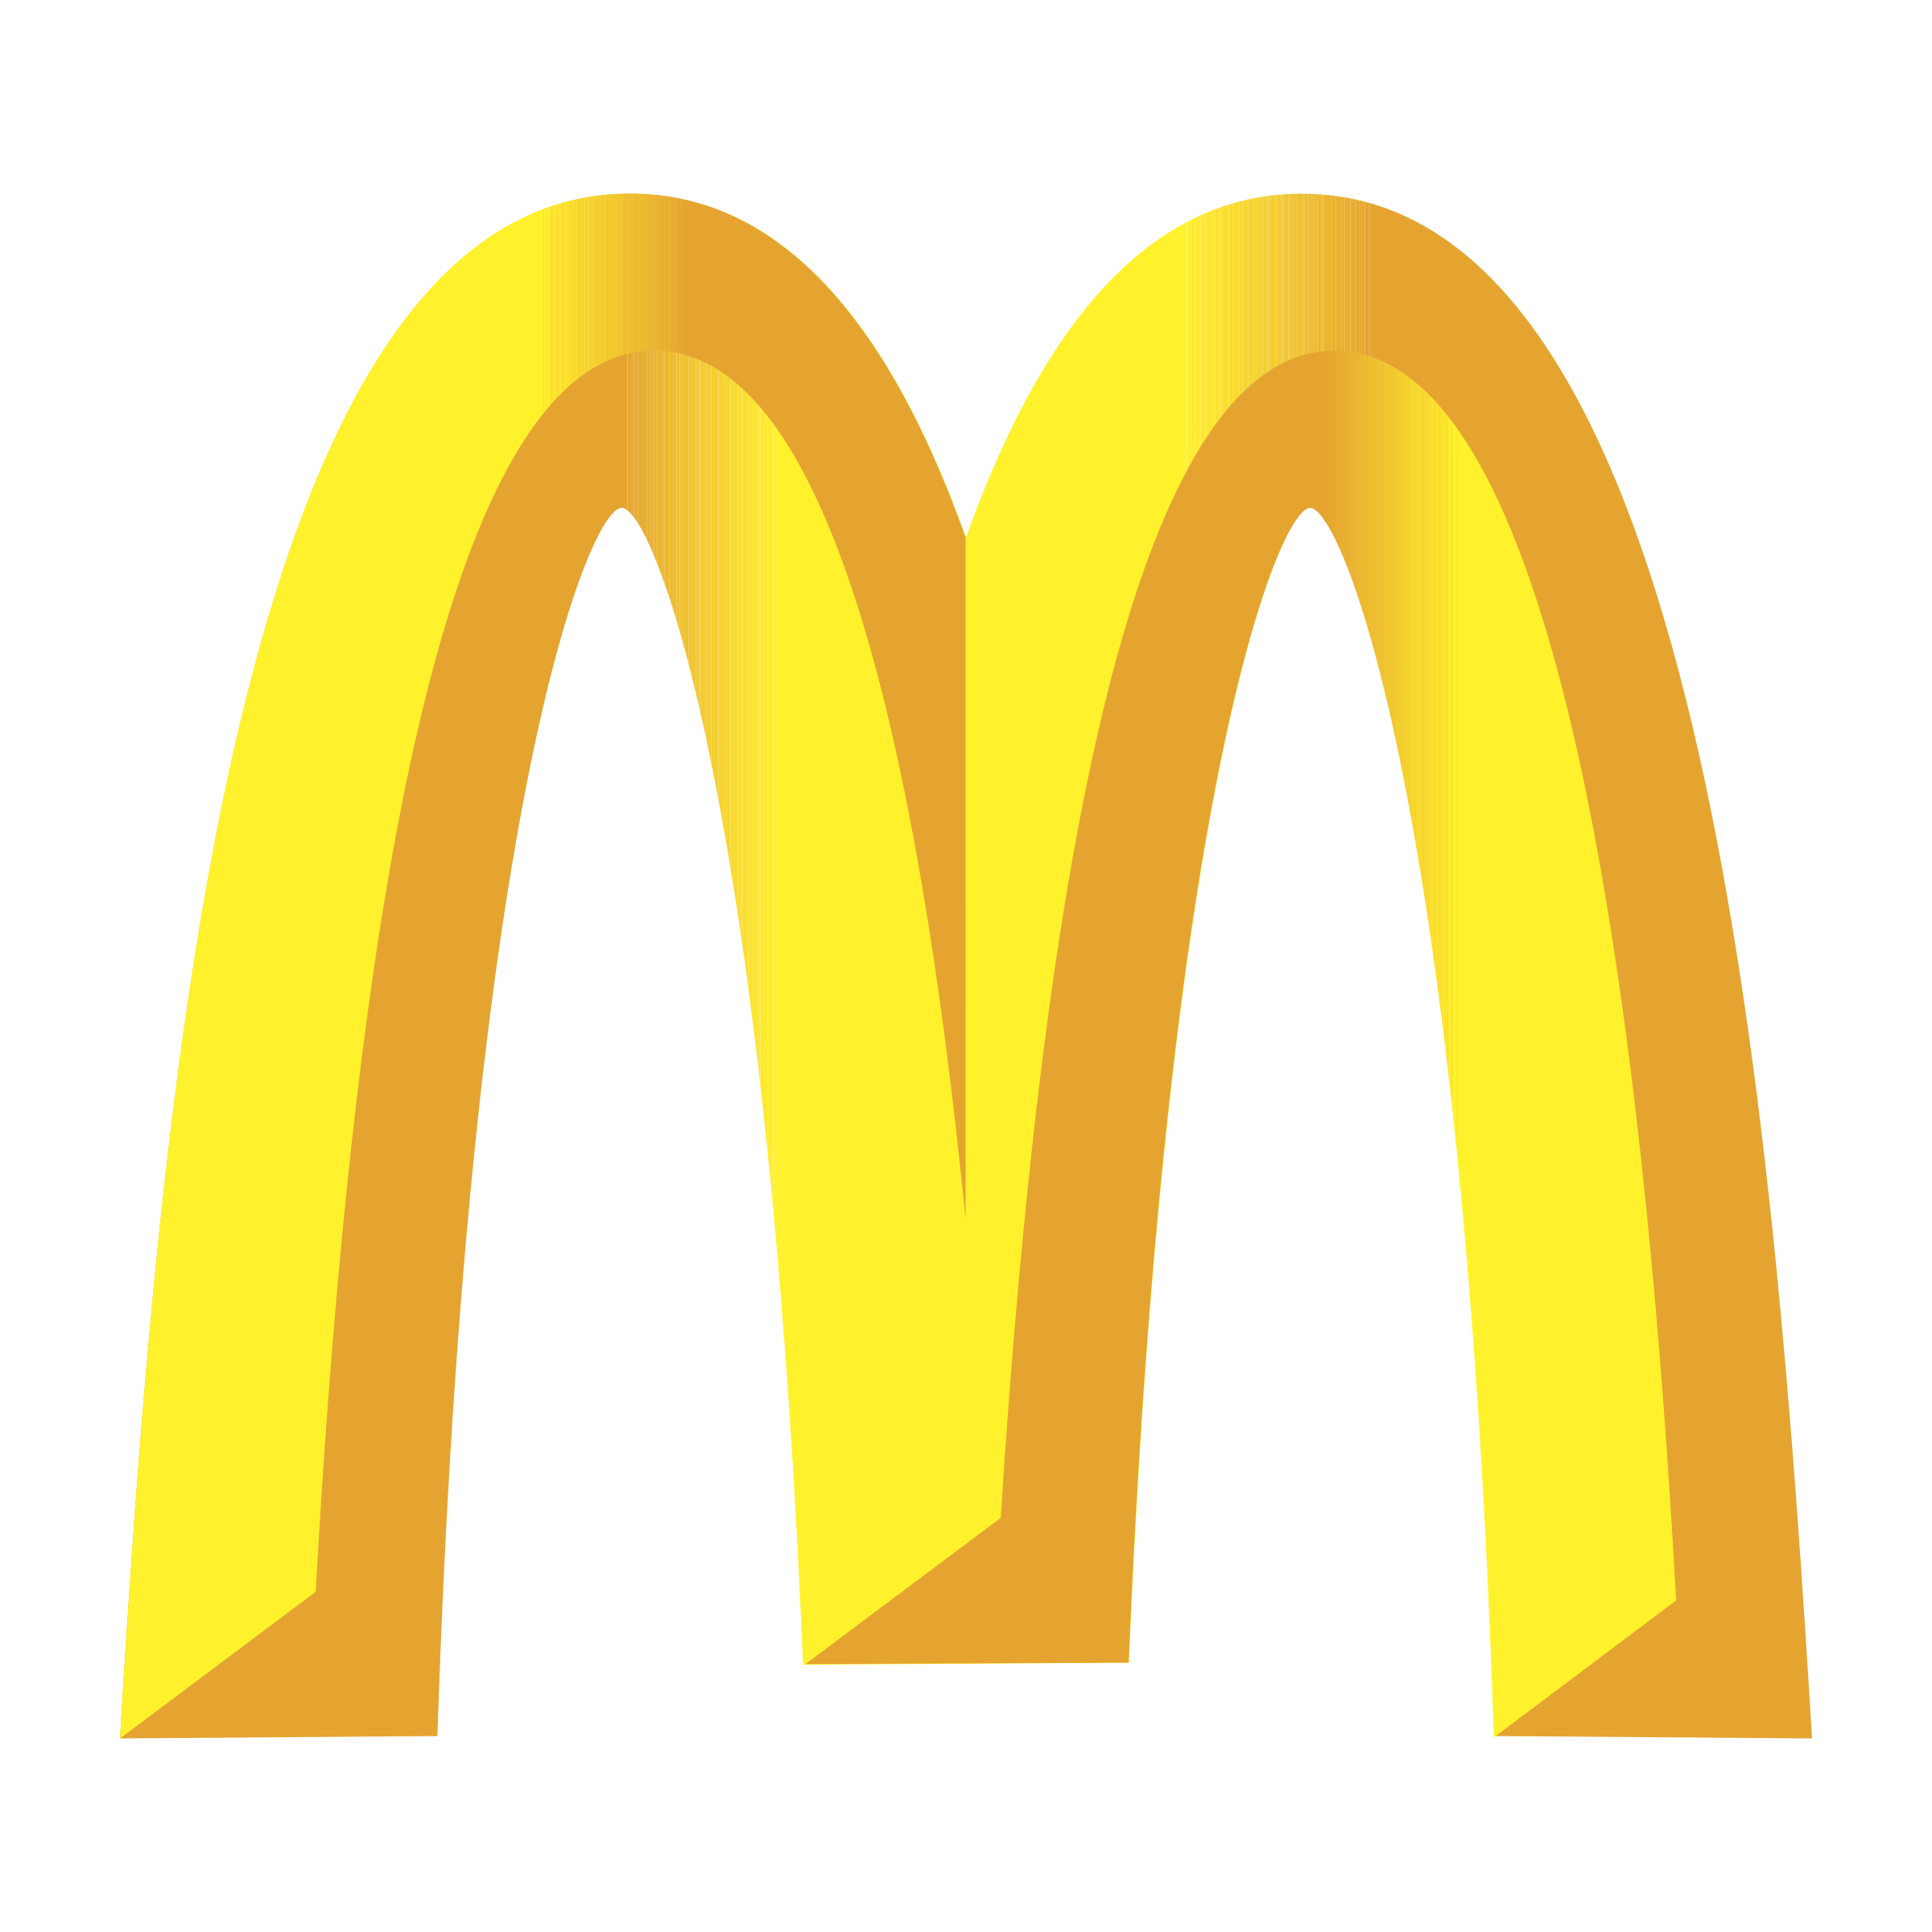 mcdonalds logo png 10 free Cliparts | Download images on ...